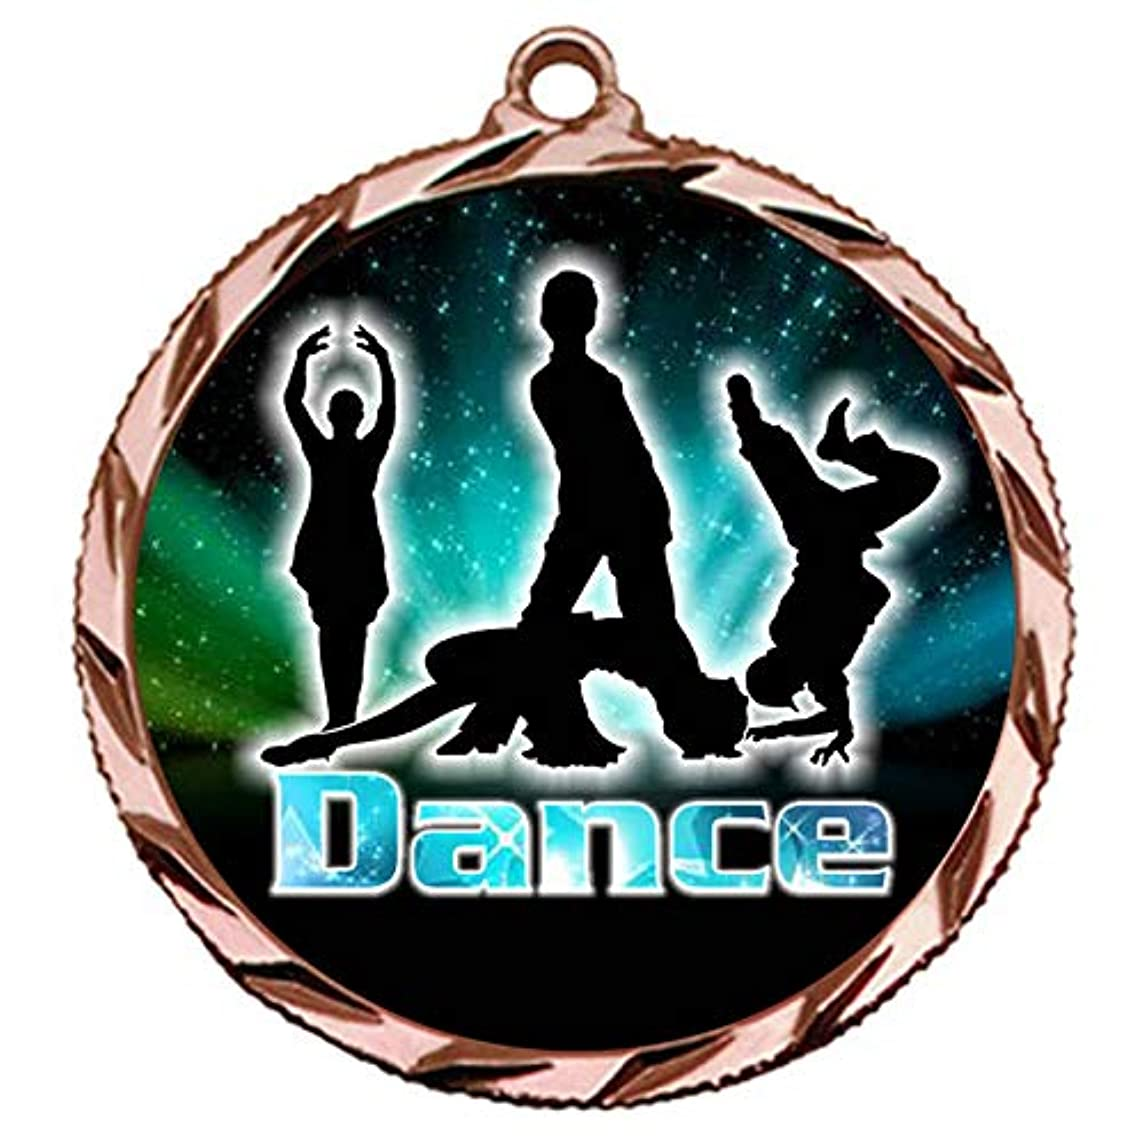 Express Medals Bronze 3rd Place Dance Battle Medal with 3 Lines of Personalized Engraving and Neck Ribbon Award Trophy 022B